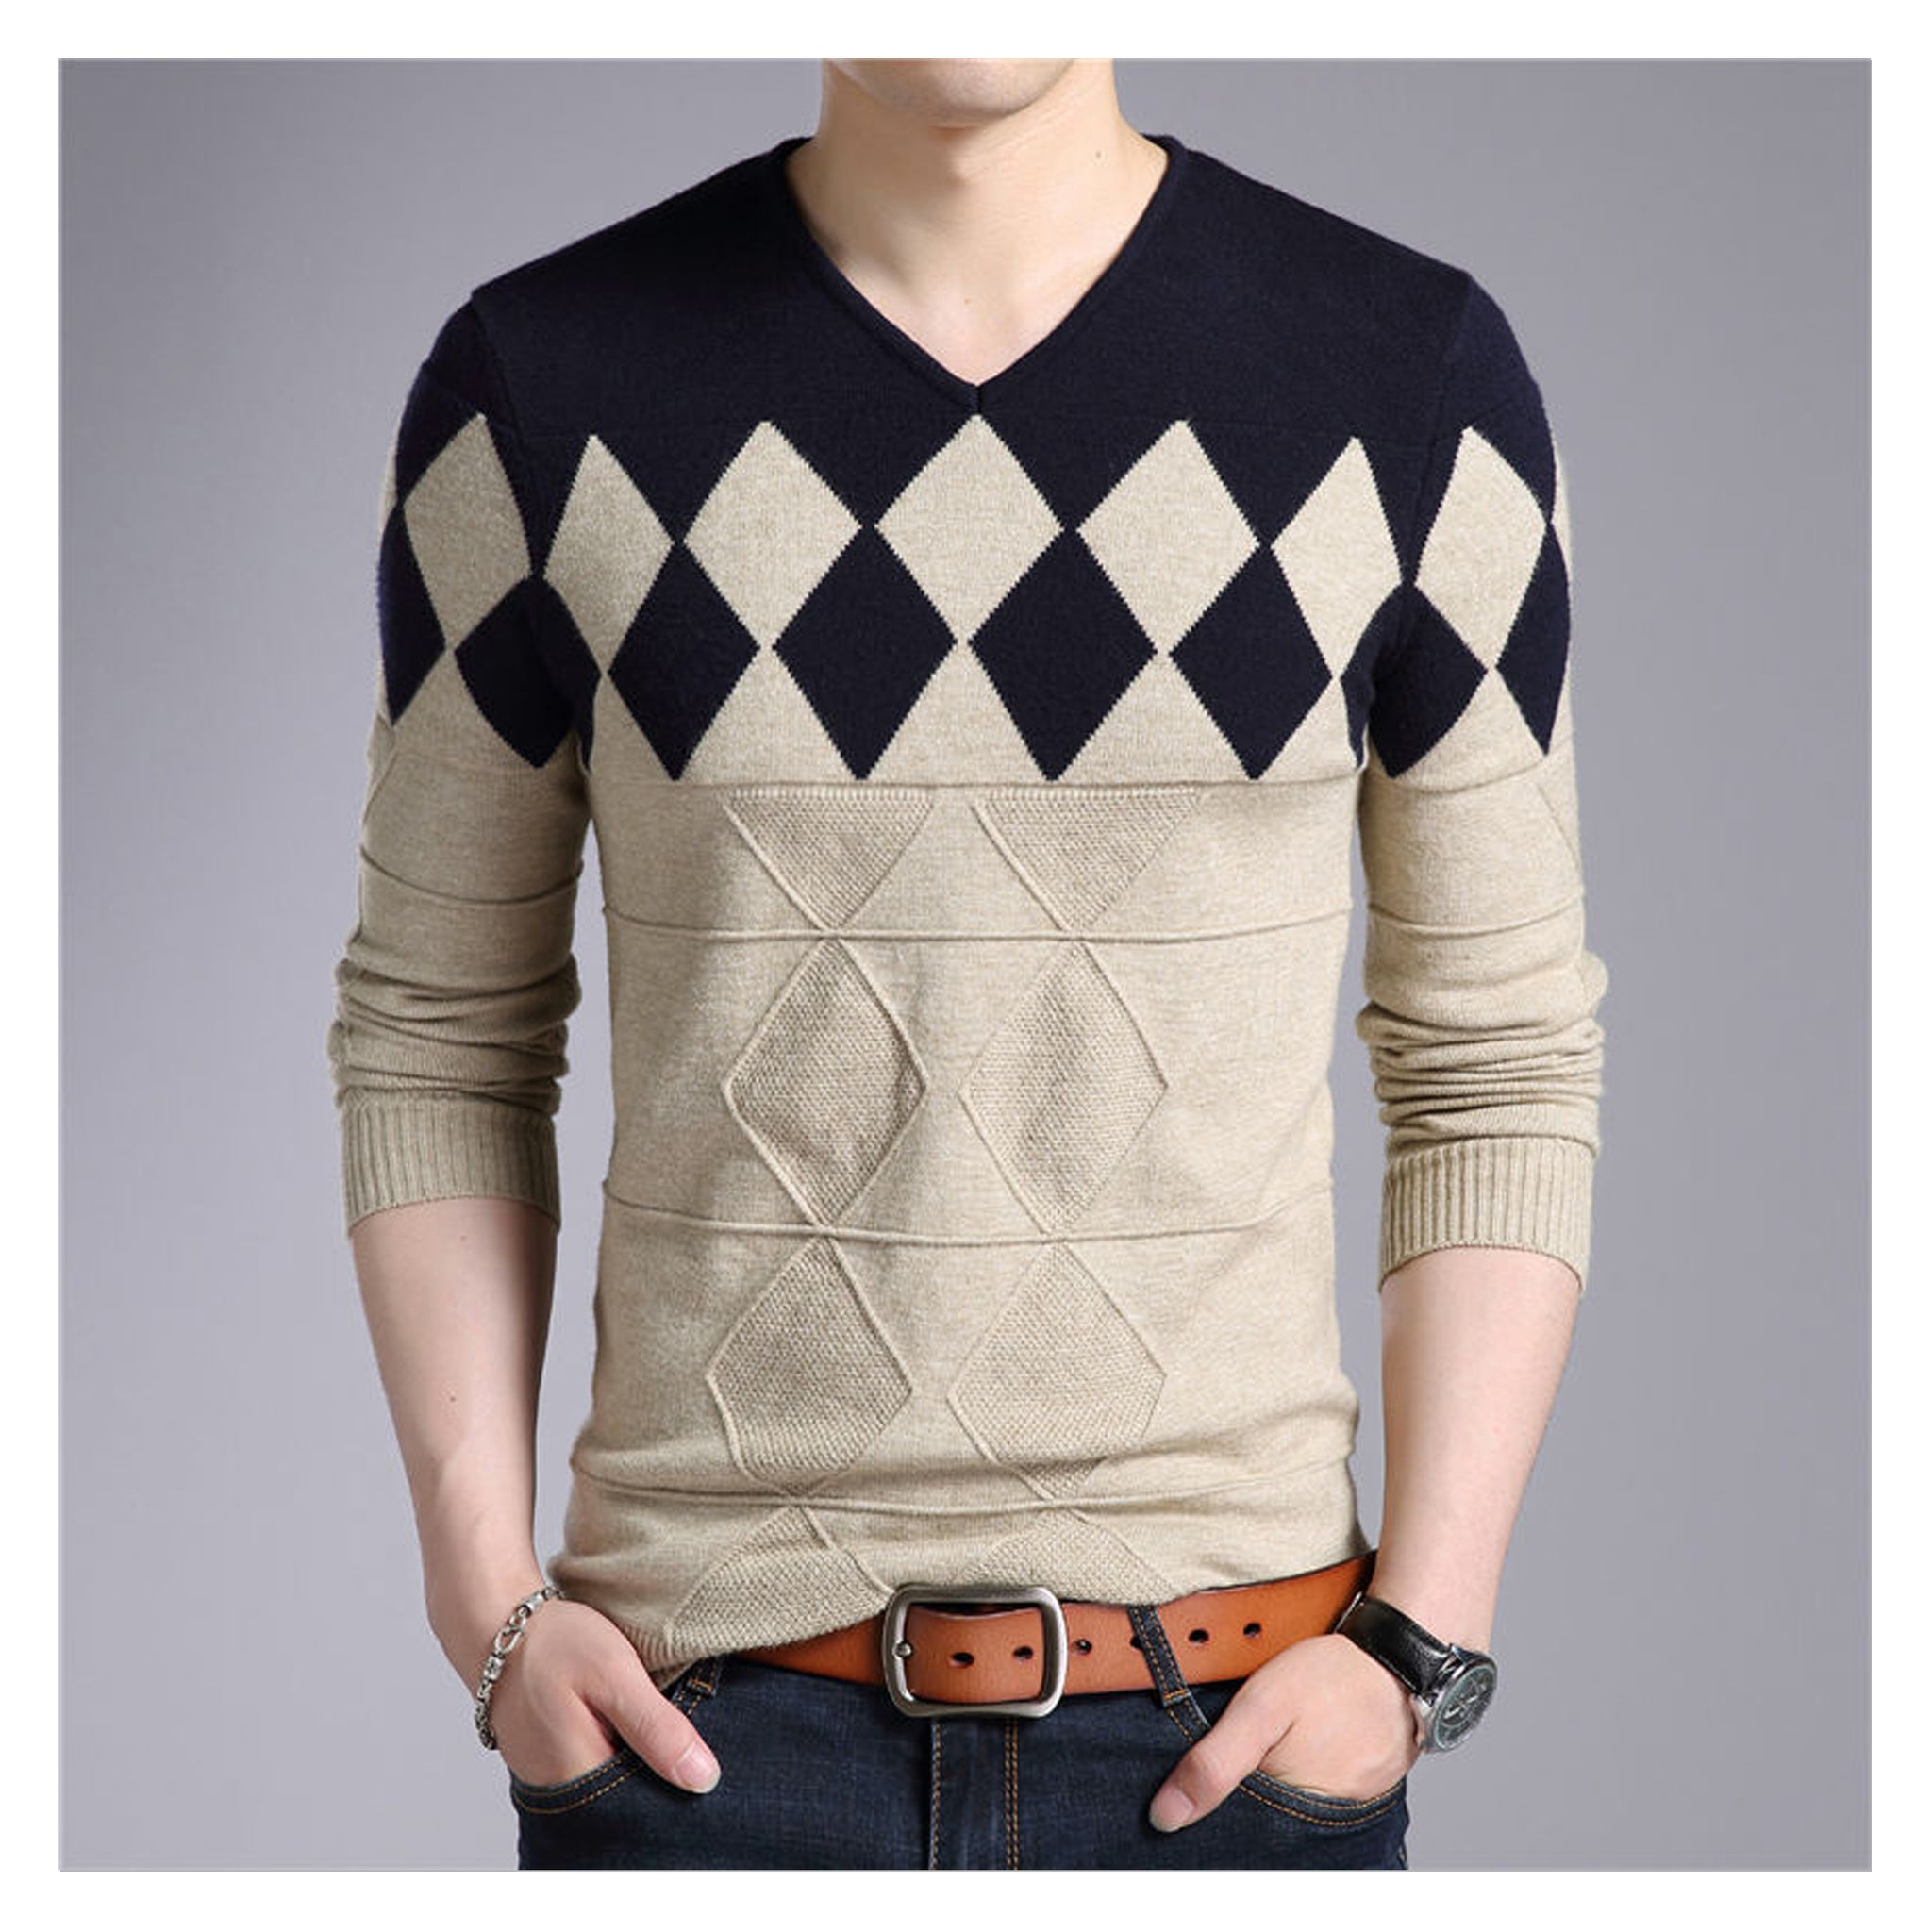 Wool sweater for men collection